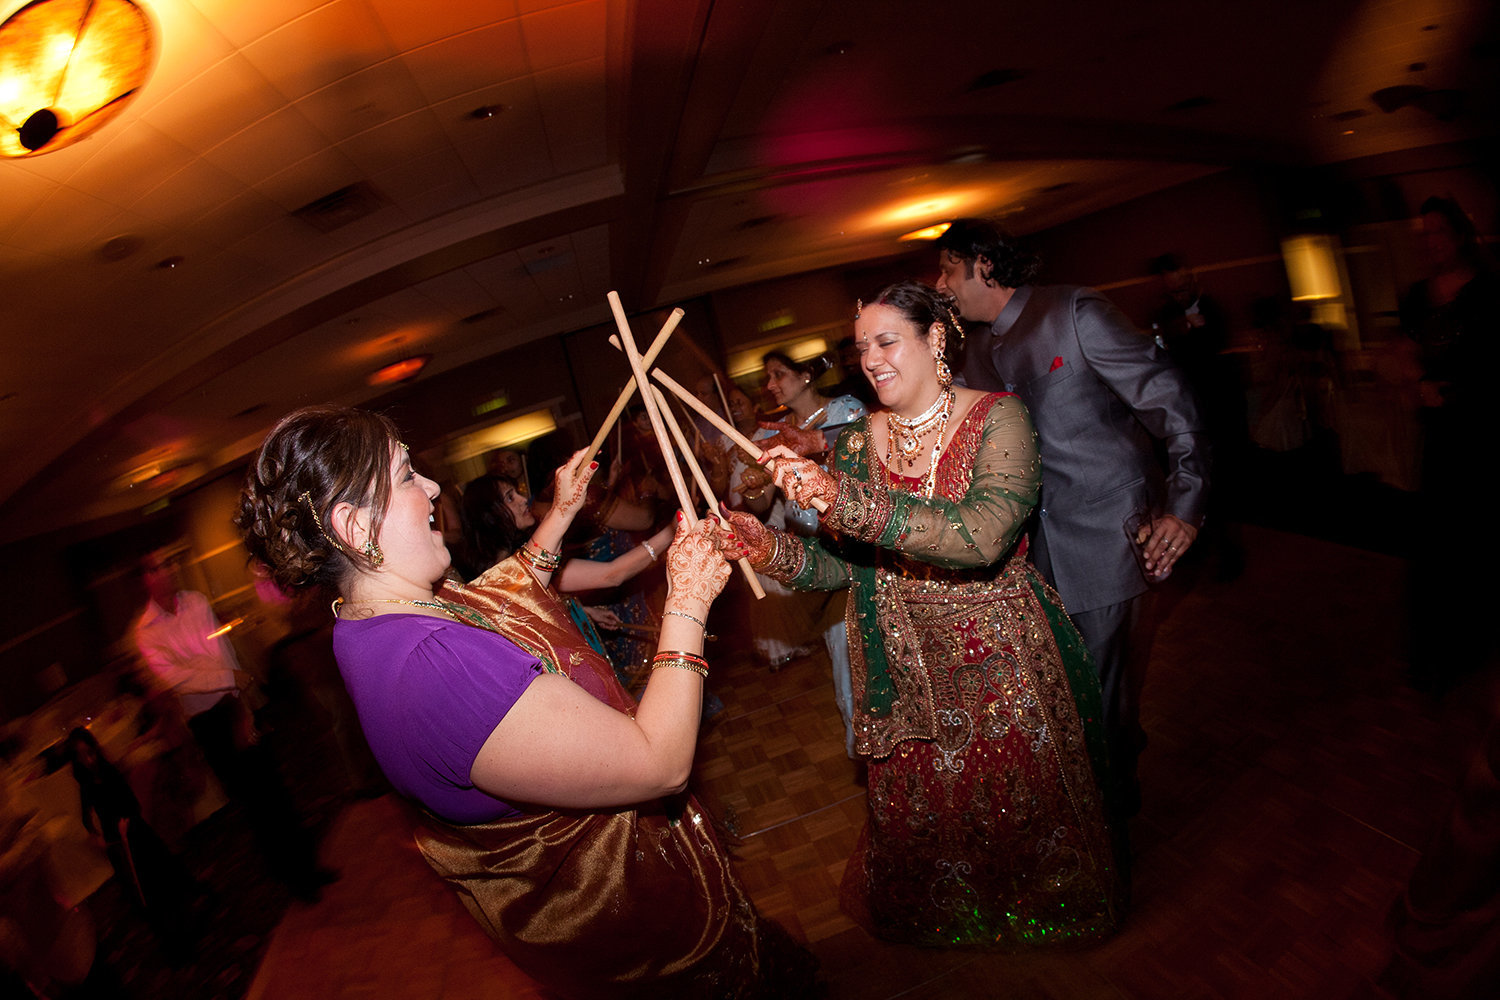 The Garba is a dance from Gujarat India performed at a Hindu wedding reception